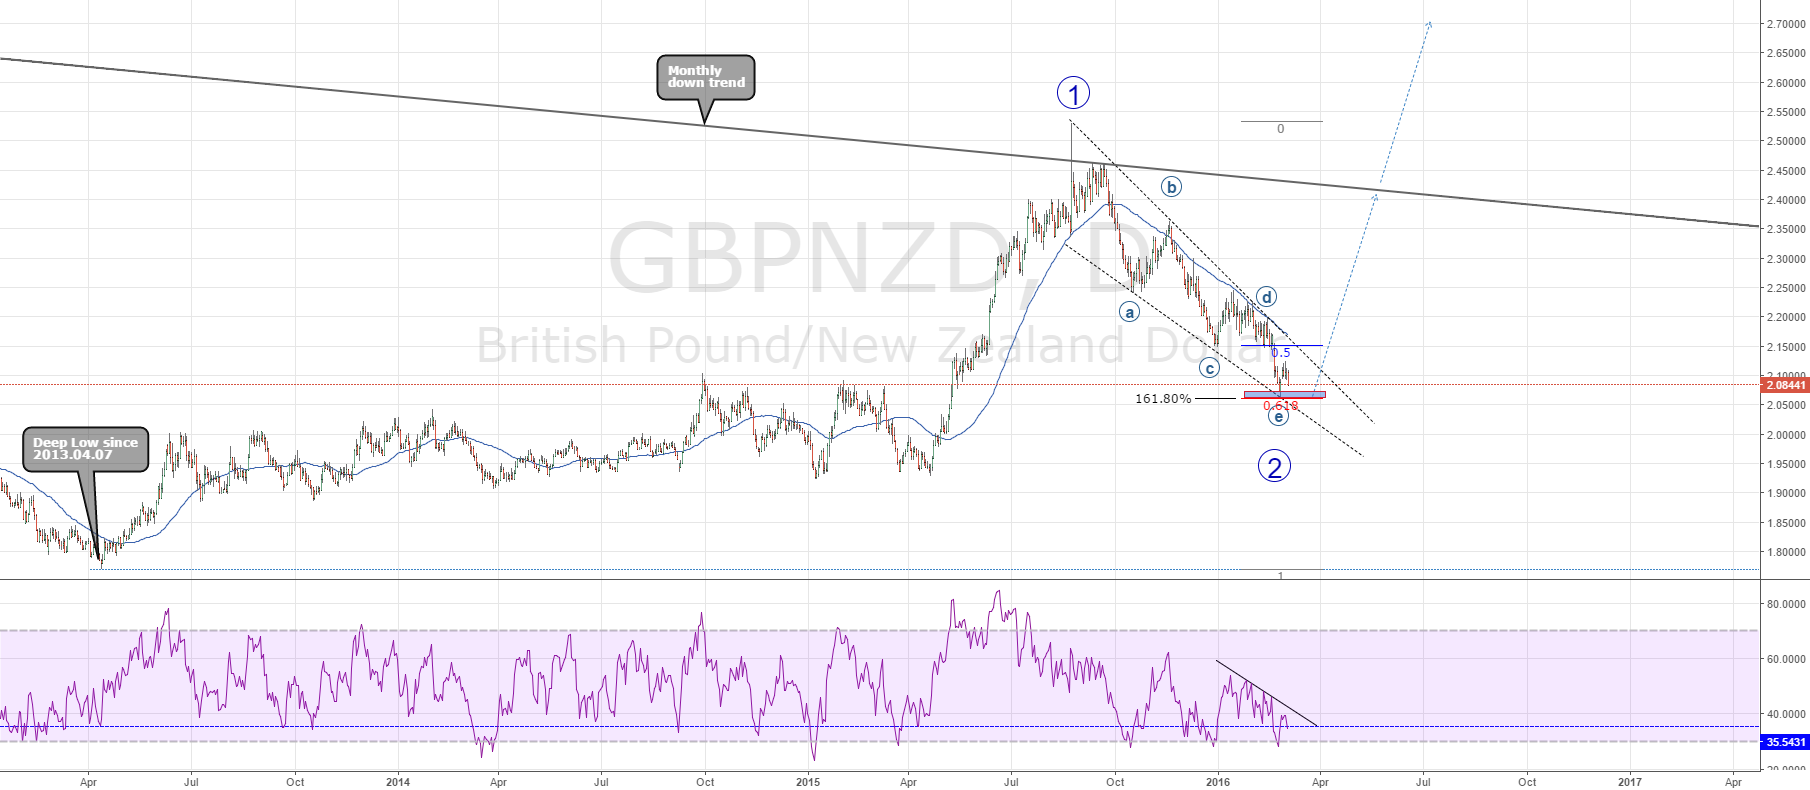 GBPNZD finish the correction ABCDE